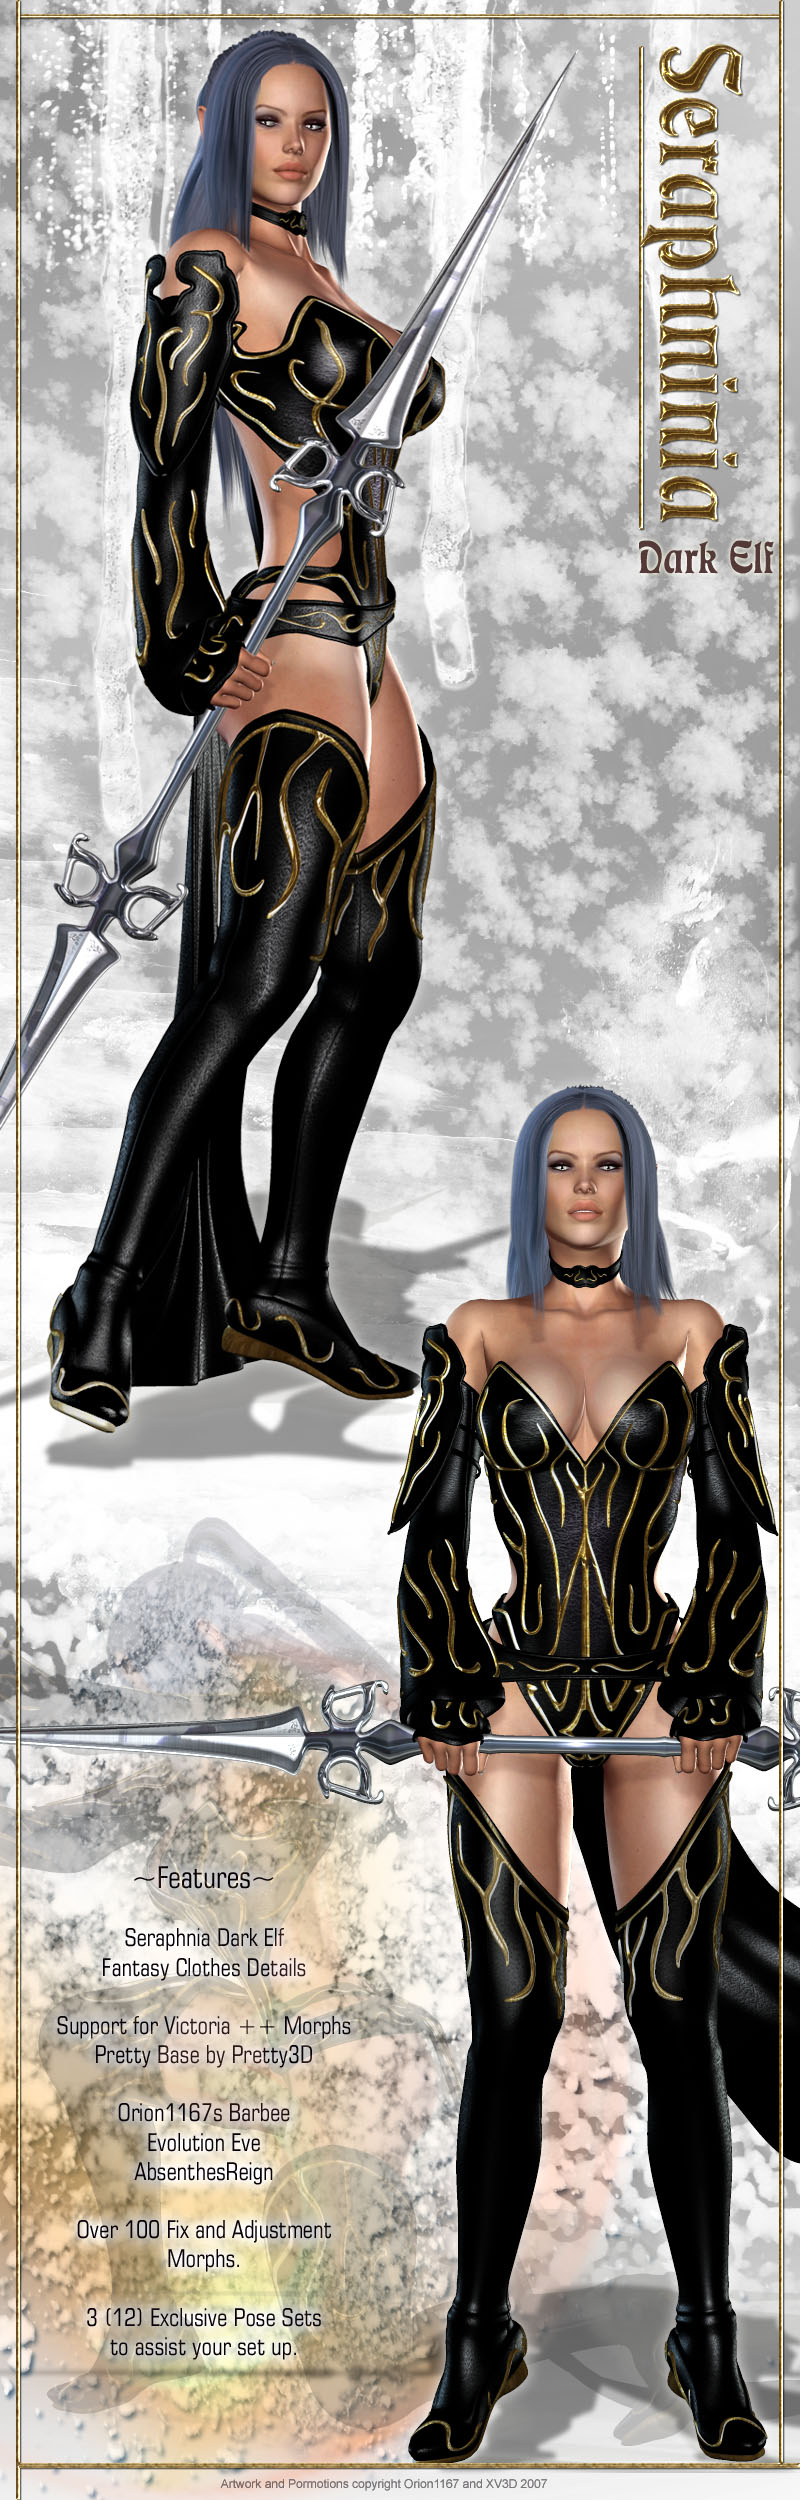 Seraphnia Dark Elf Clothing